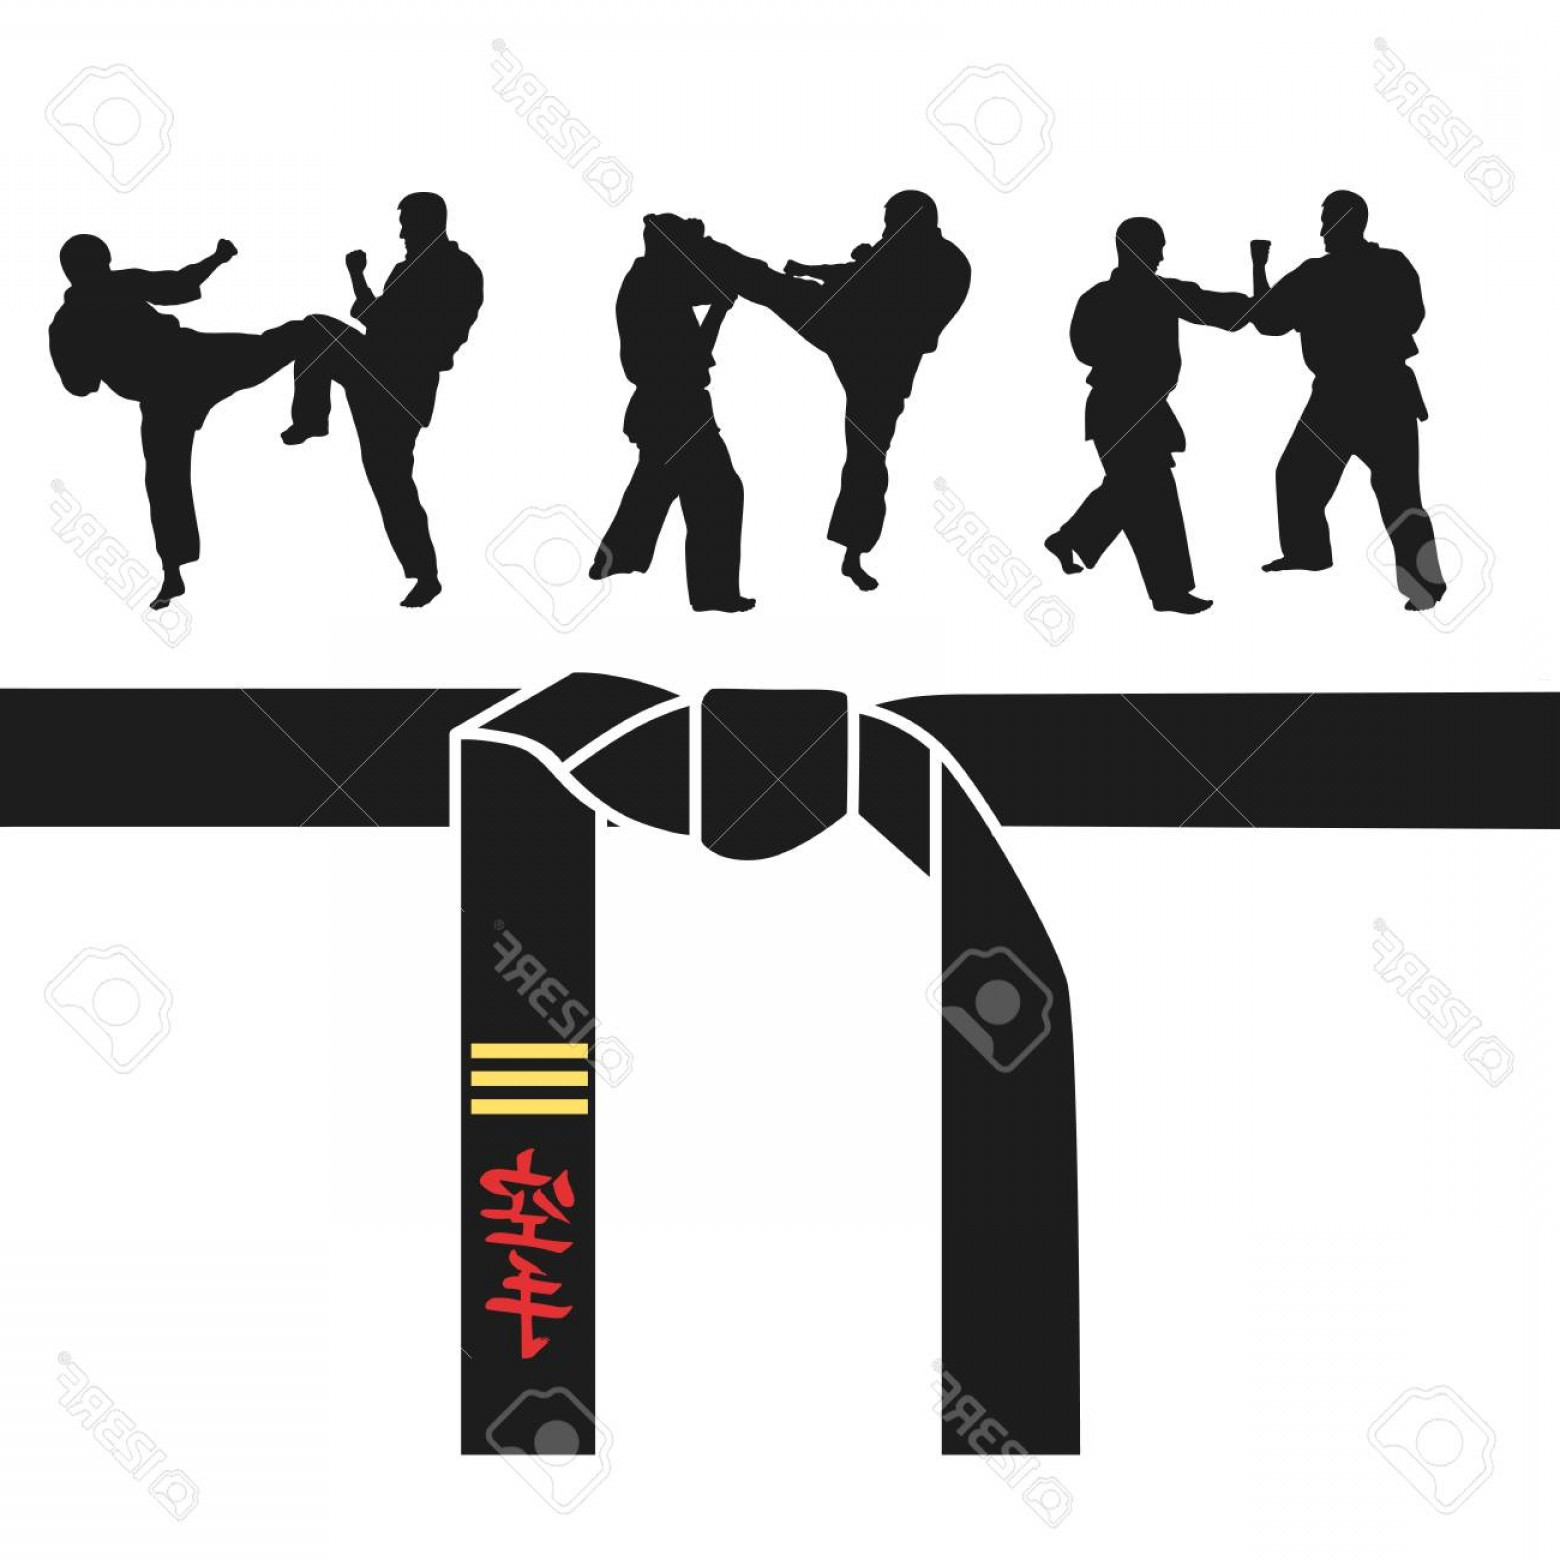 Karate Vector: Photostock Vector Karate Belt Men Demonstrating Karate Vector Illustration